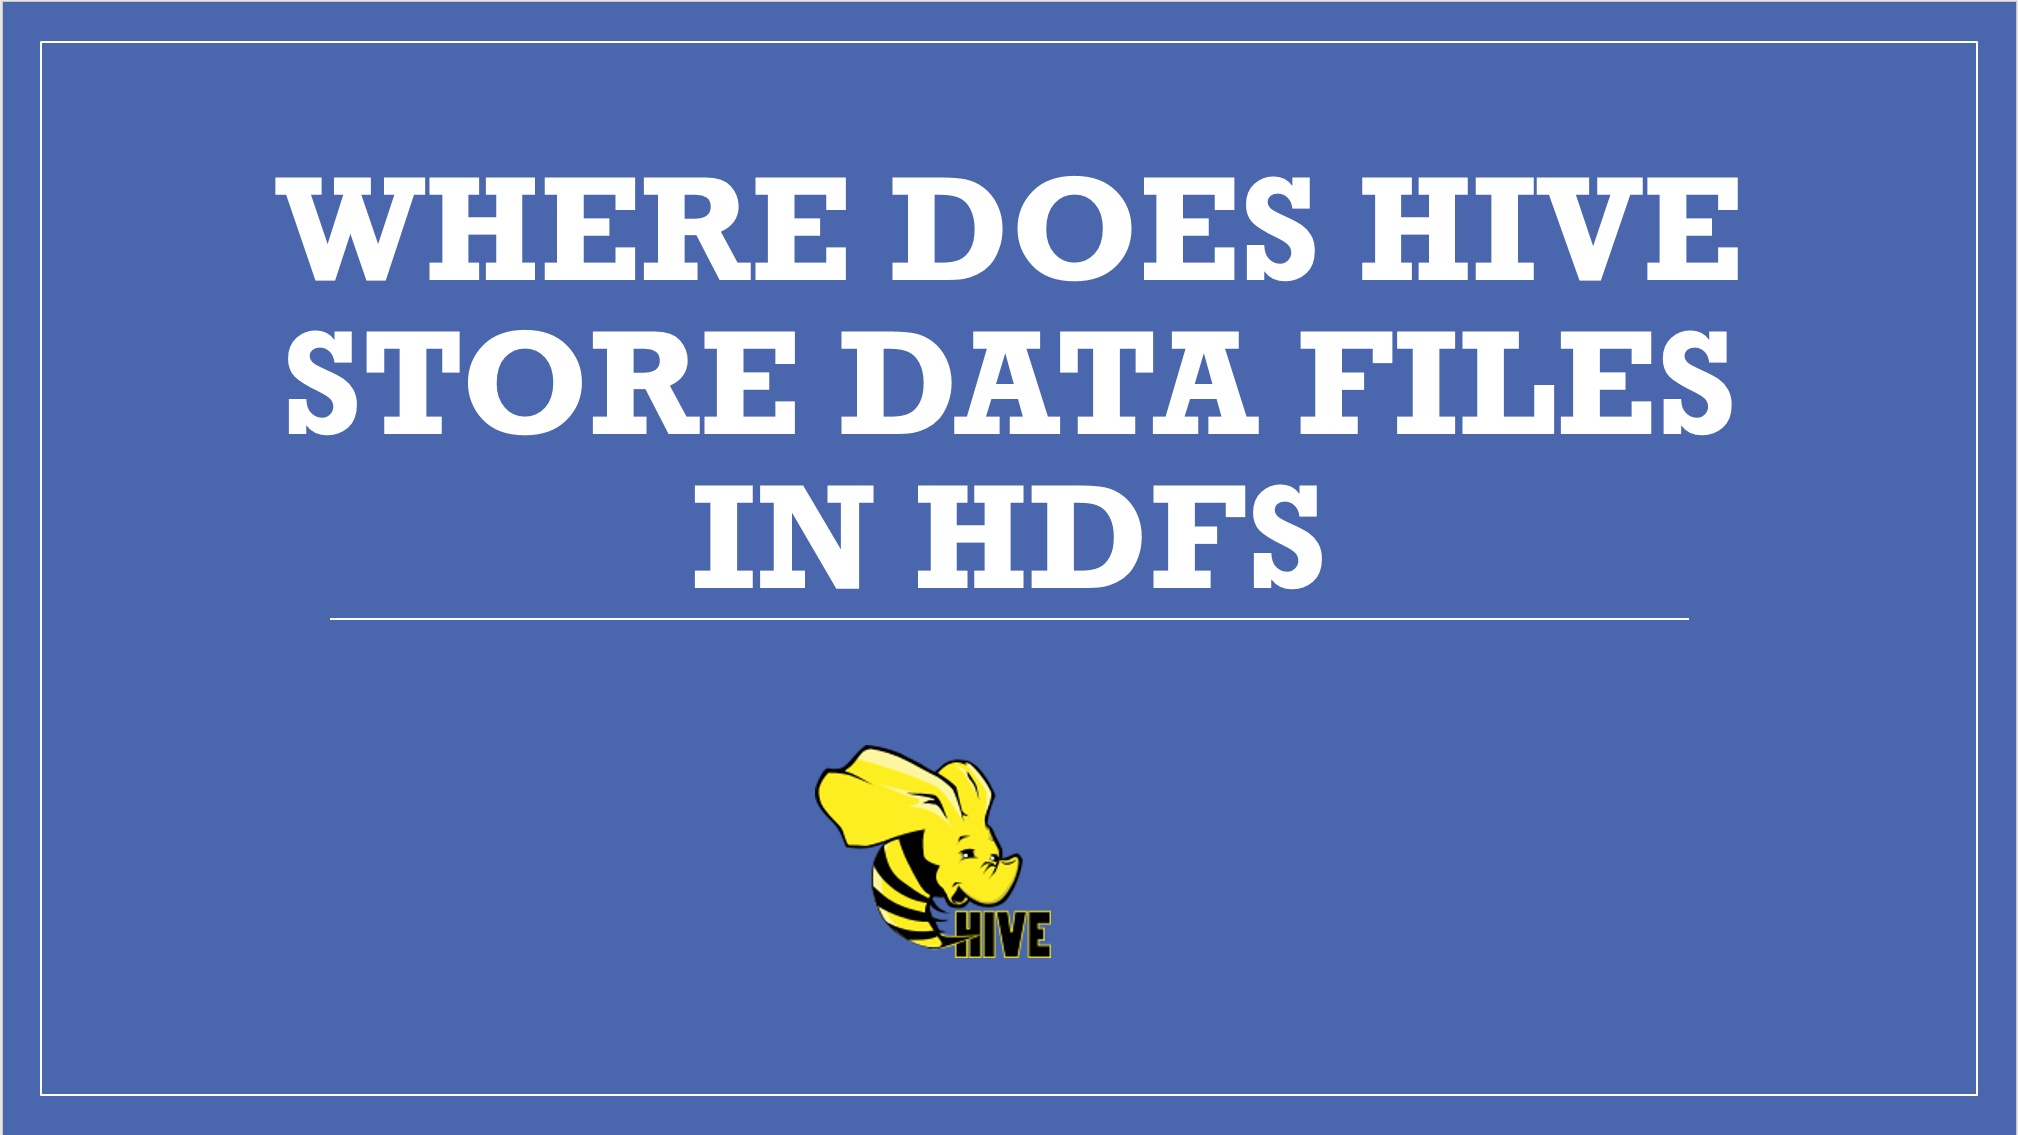 Where Does Hive Stores Data Files in HDFS?